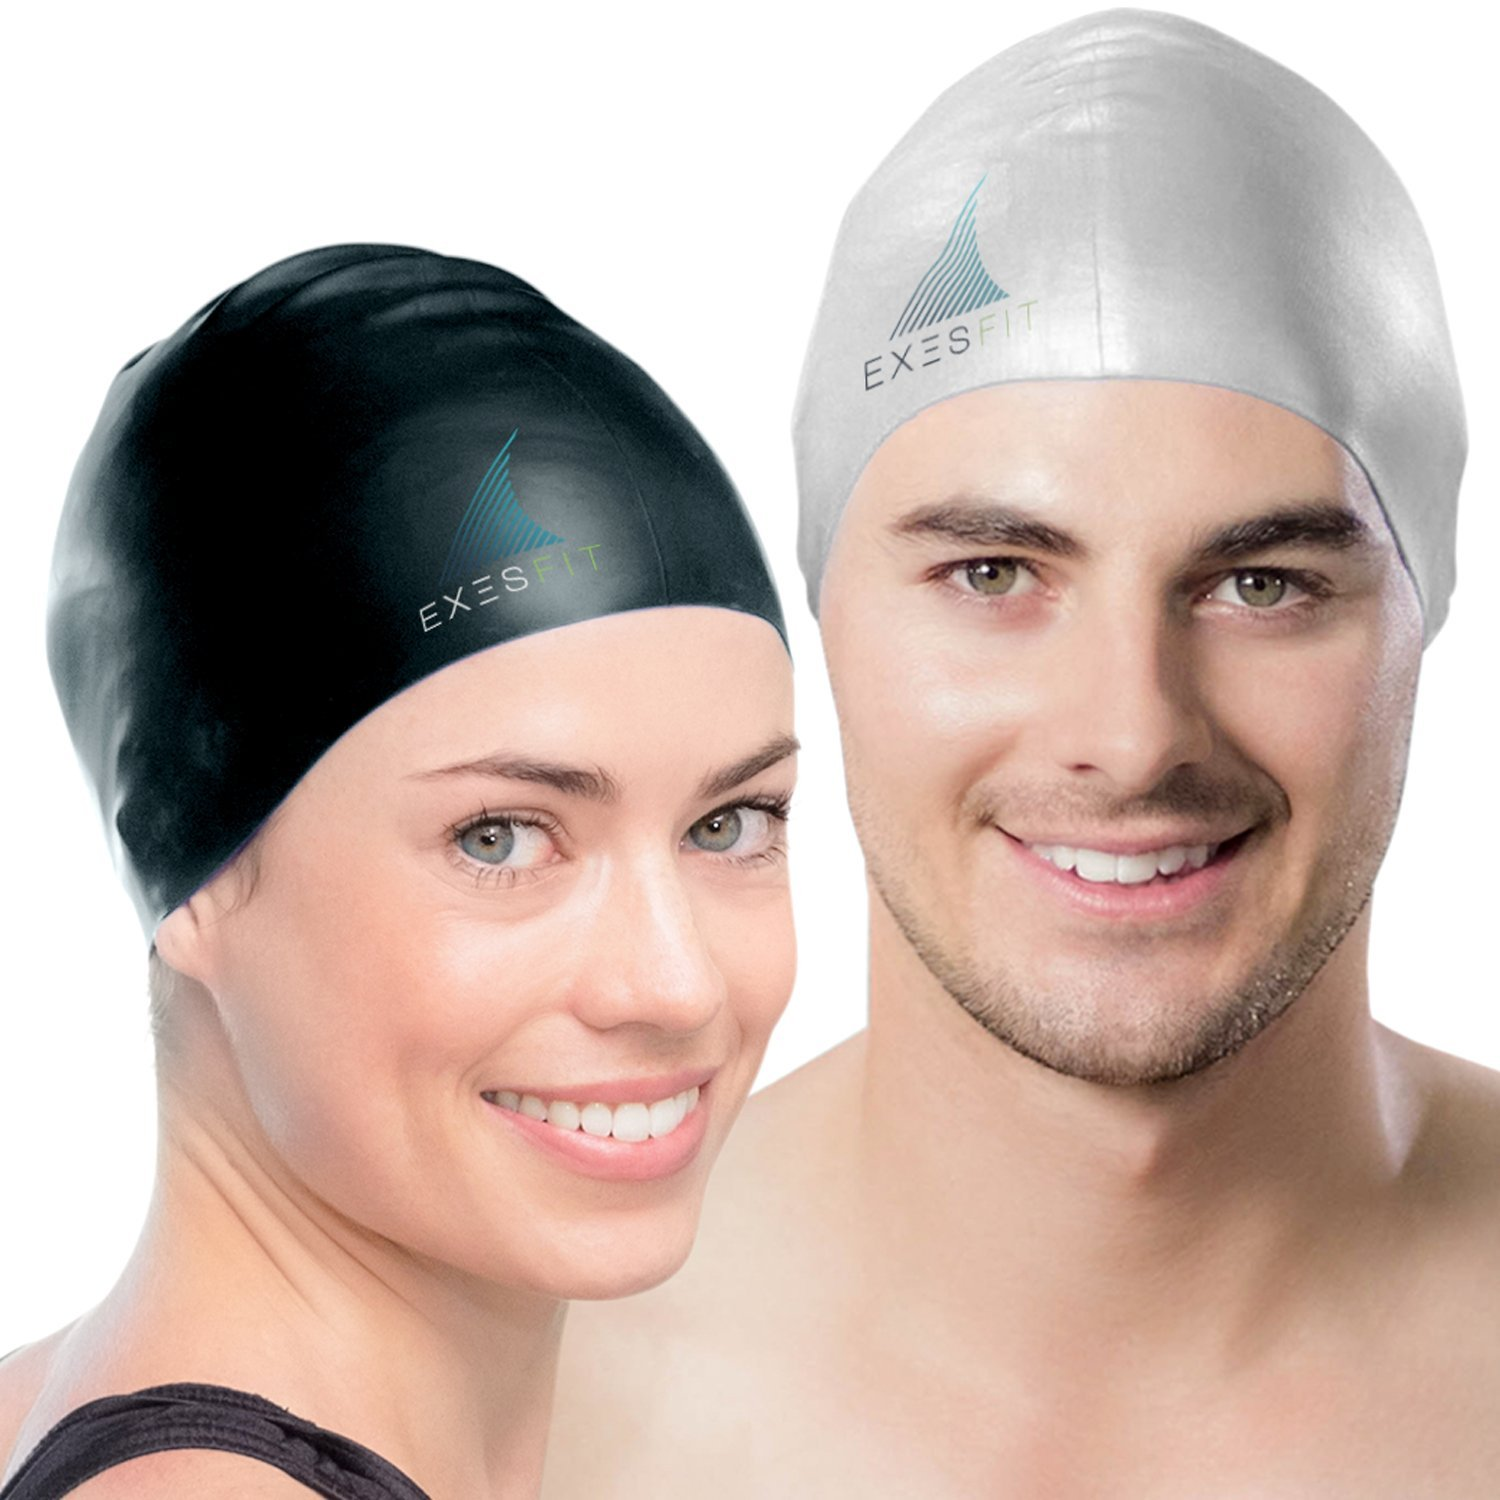 Set of 2 – High Quality Swim Caps for Adult Men and Women – Protects your Hair and Ears while Swimming – Protective Zipper Case Included – Exclusiv Swim Cap Gift Set for Him and Her